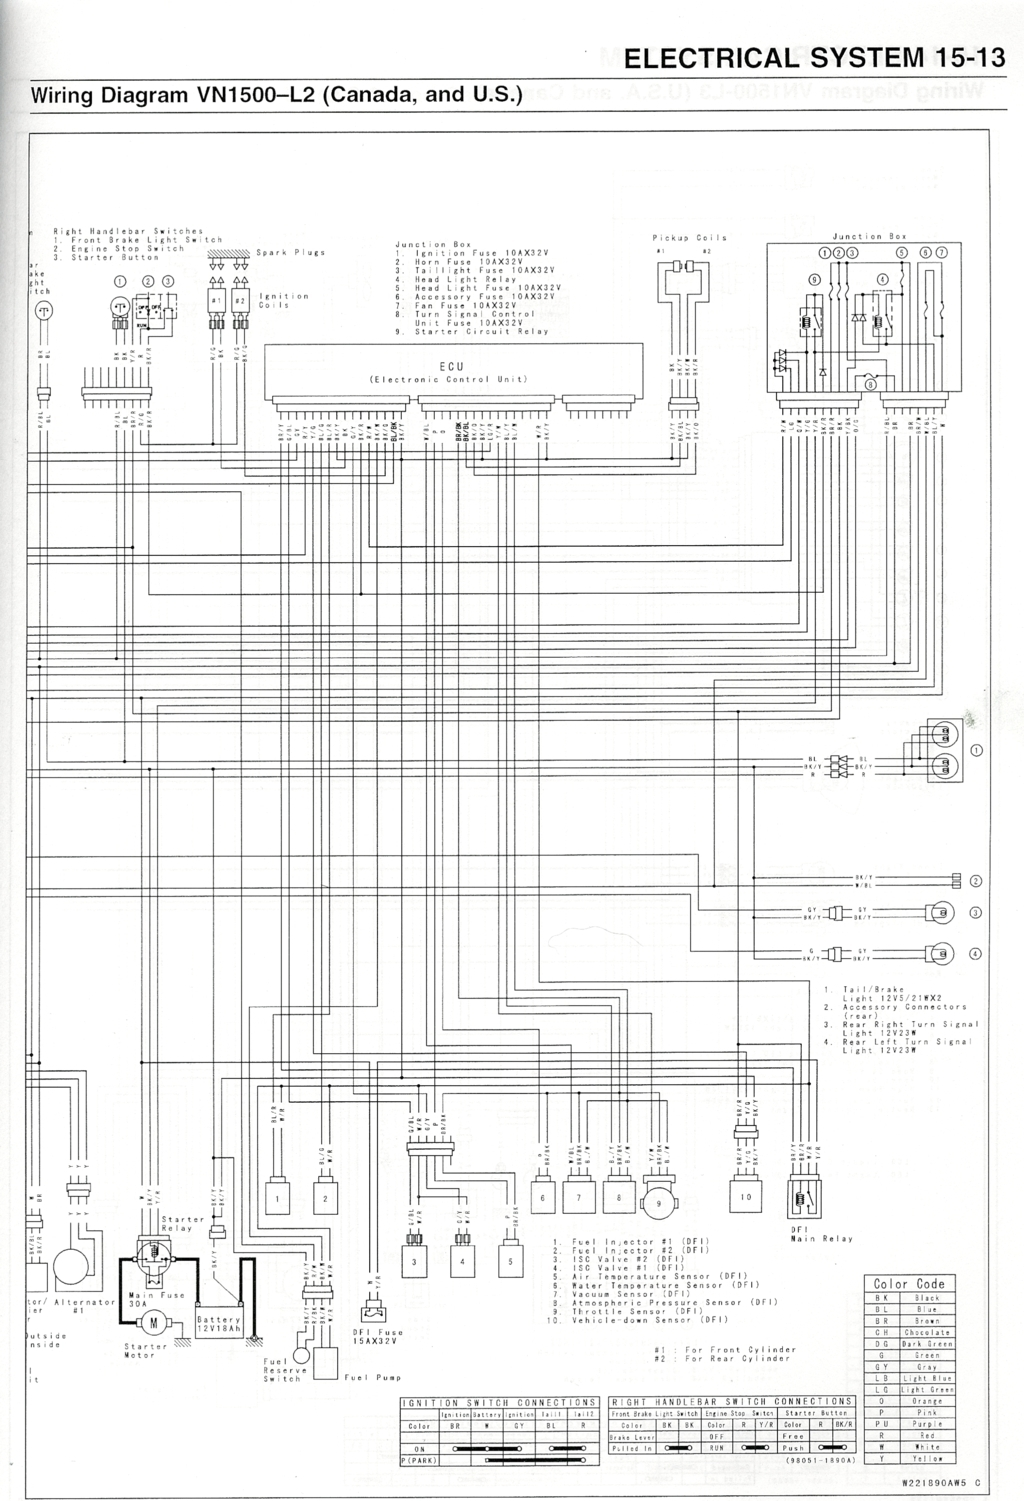 nomad_wiring_diagram_p2 vulcan wiring diagrams gadget's fixit page Kawasaki Vulcan 1500 Wiring Diagram at bayanpartner.co